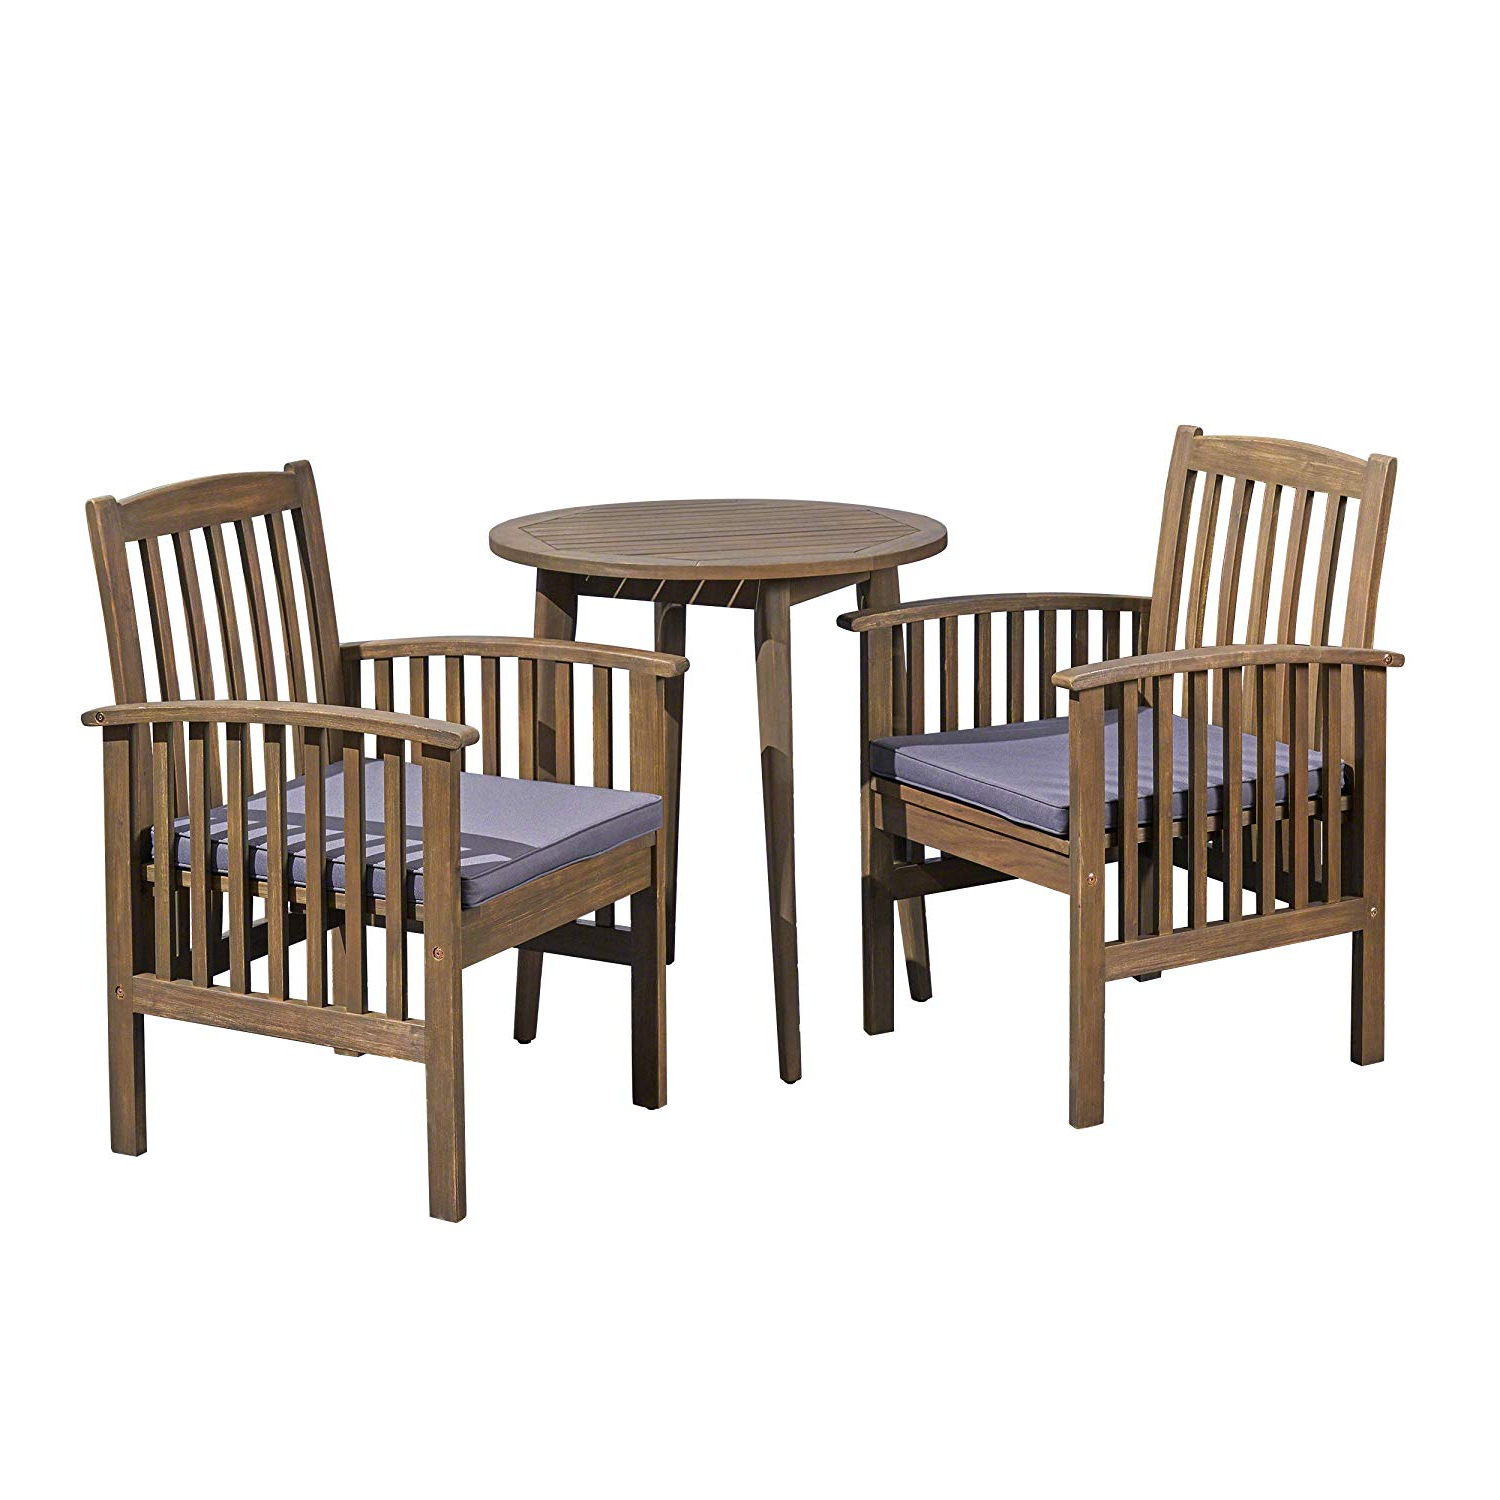 Amazon: Alma Acacia Patio Dining Set, 2 Seater Bistro Pertaining To Current Bistro Transitional 4 Seating Square Dining Tables (View 17 of 30)